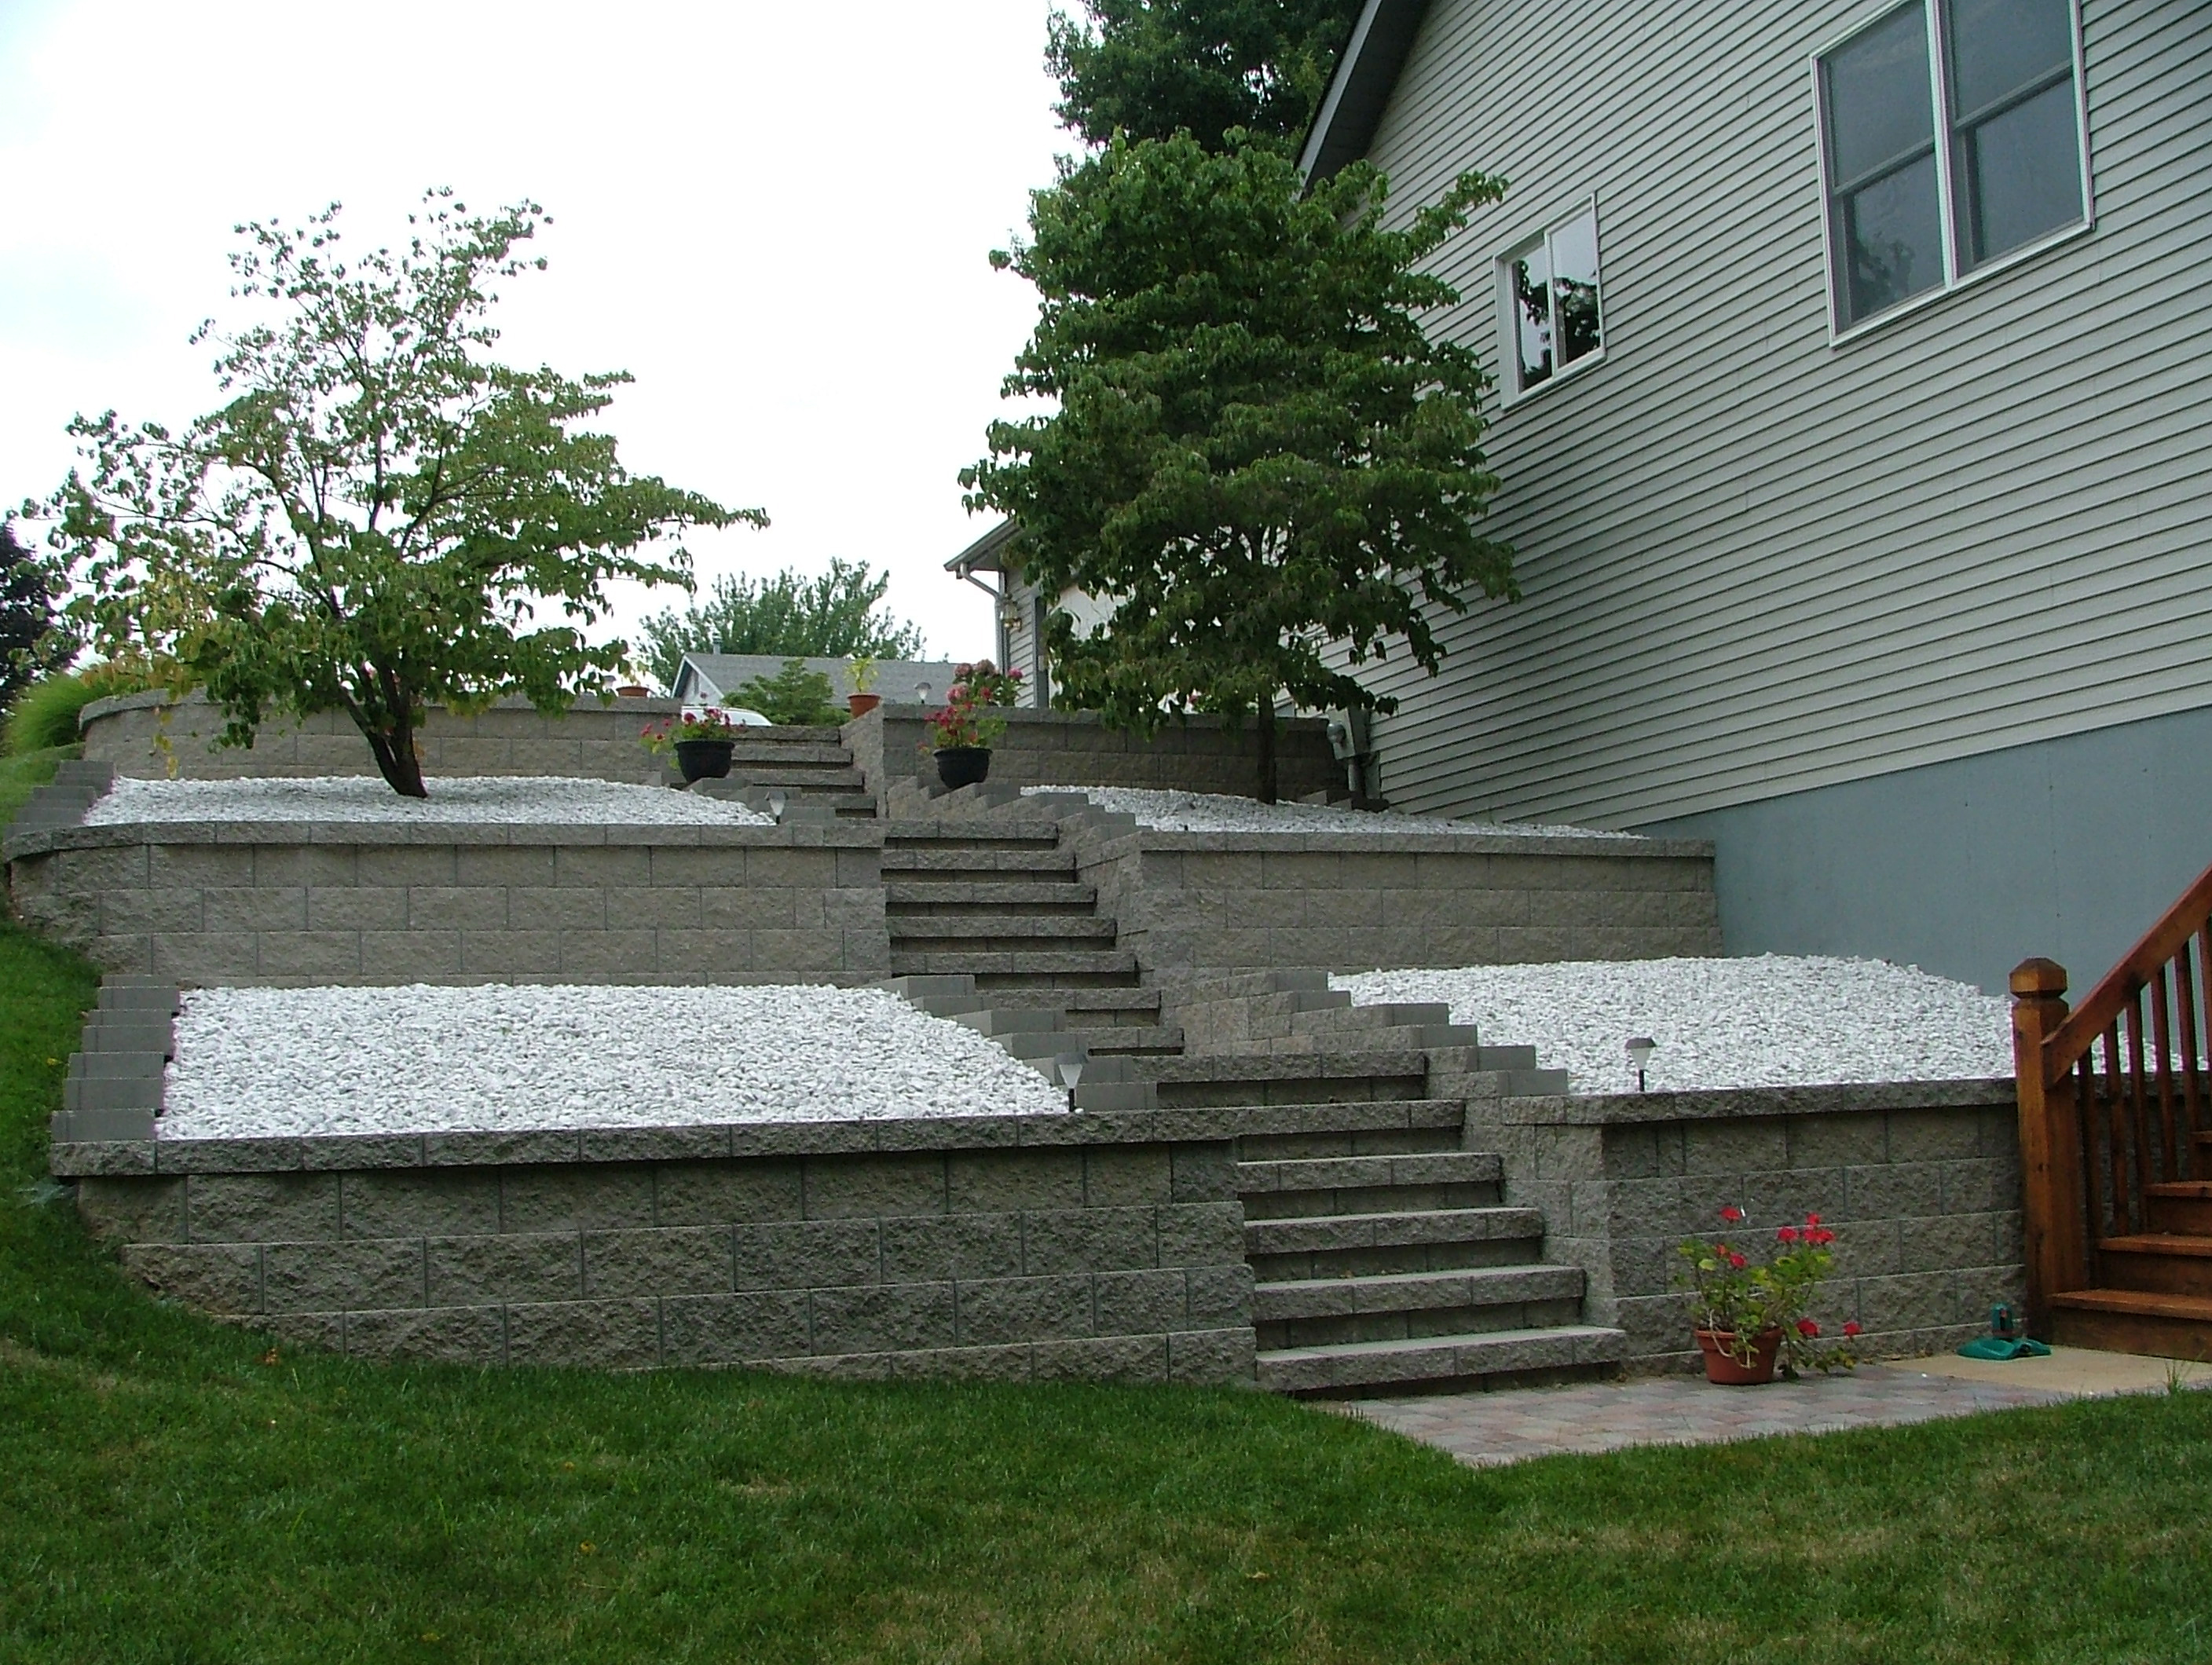 Retaining wall steps album 4 agape retaining walls inc designed and installed these retaining wall concrete block steps this type of step design fans out solutioingenieria Images